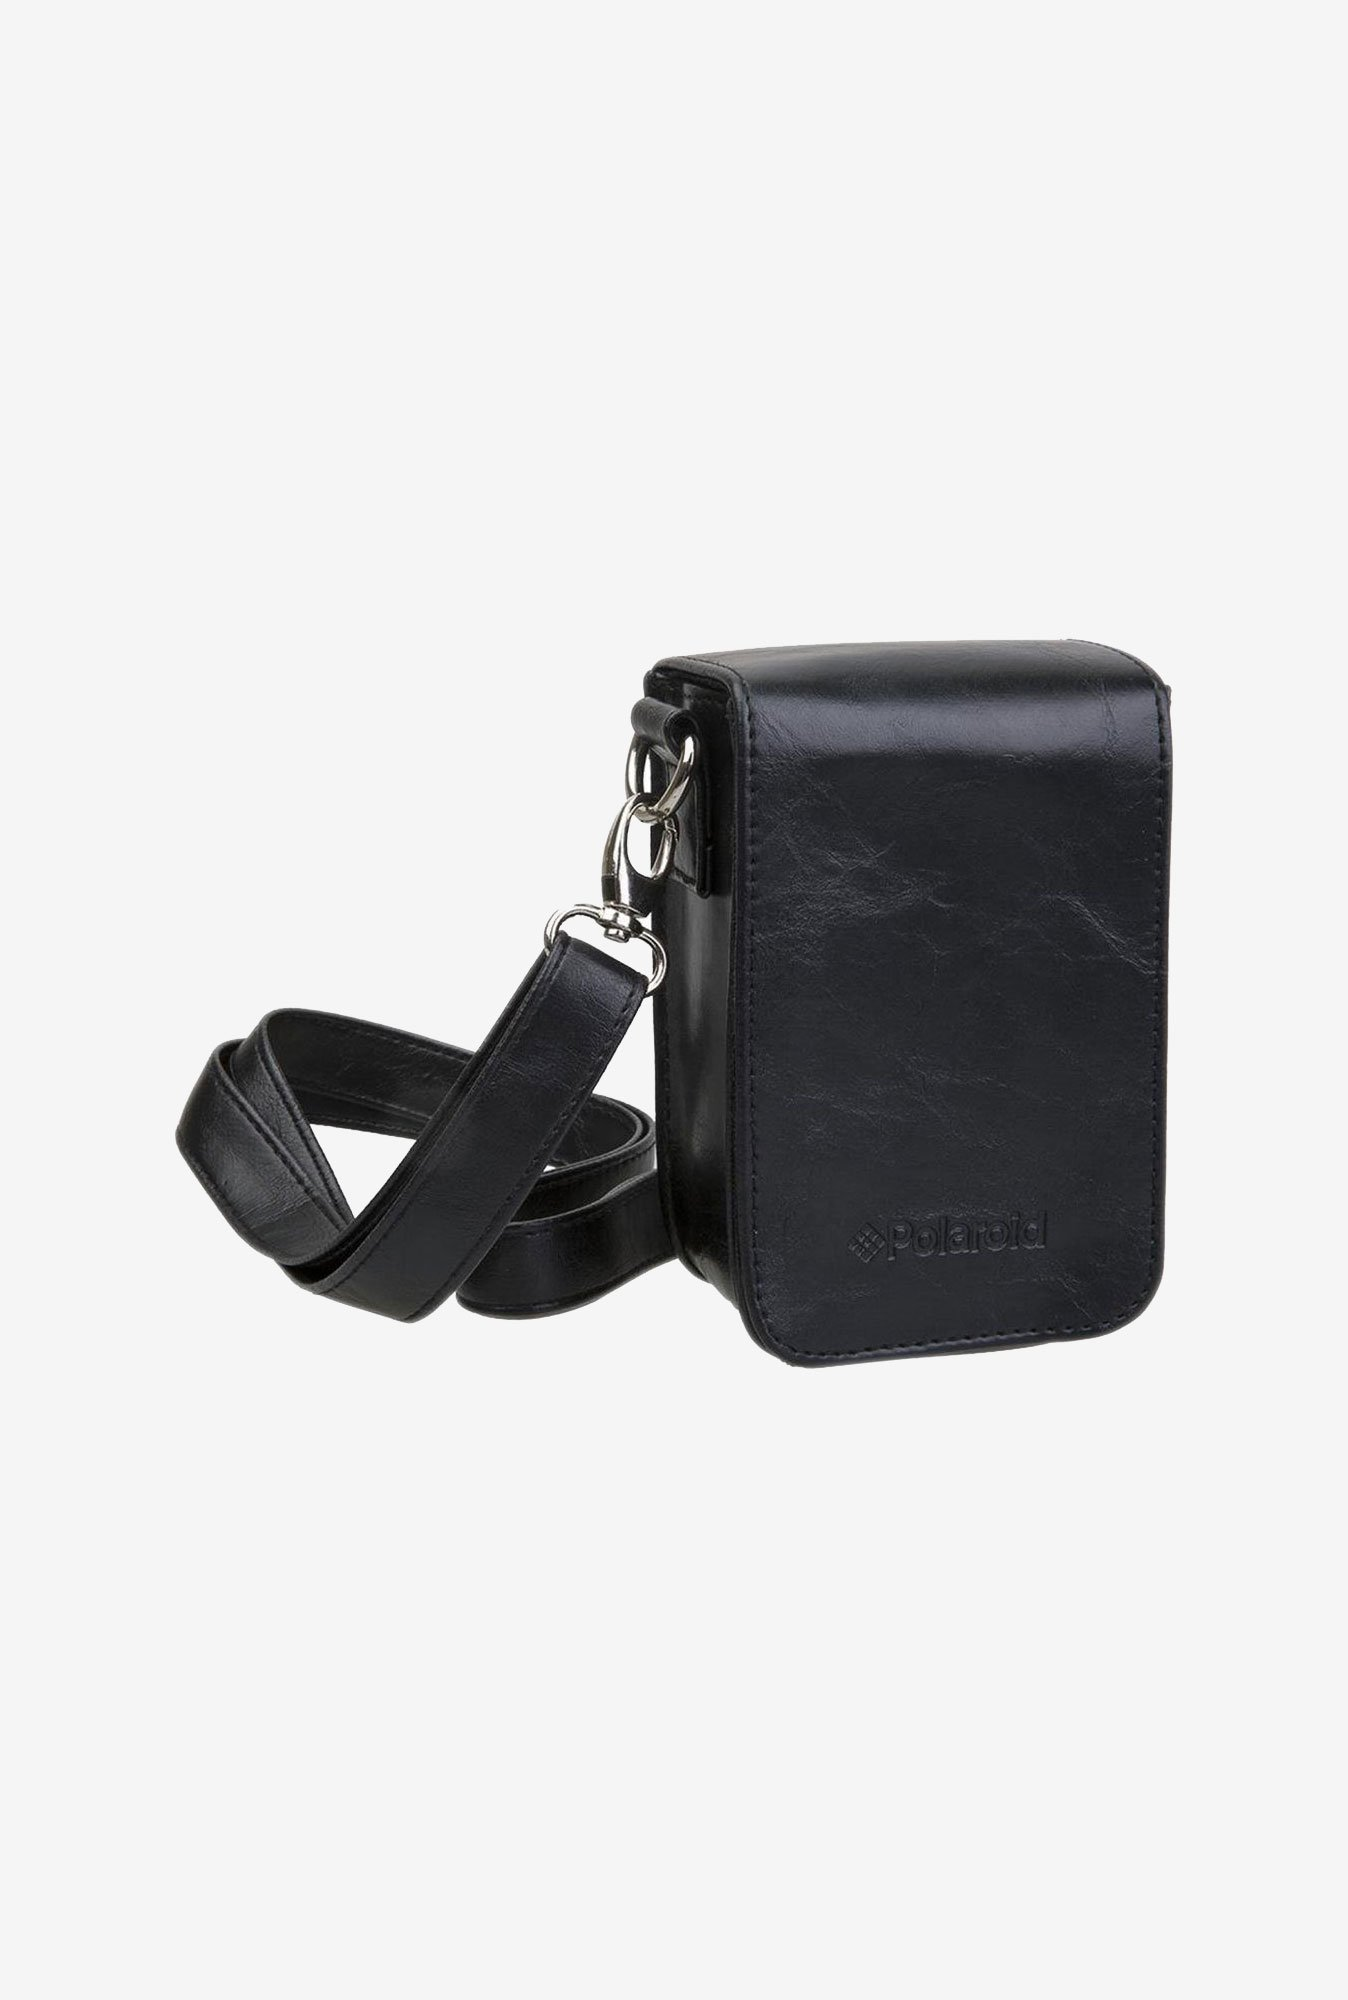 Polaroid Snap & Clip Camera Case for Polaroid Z2300 (Black)